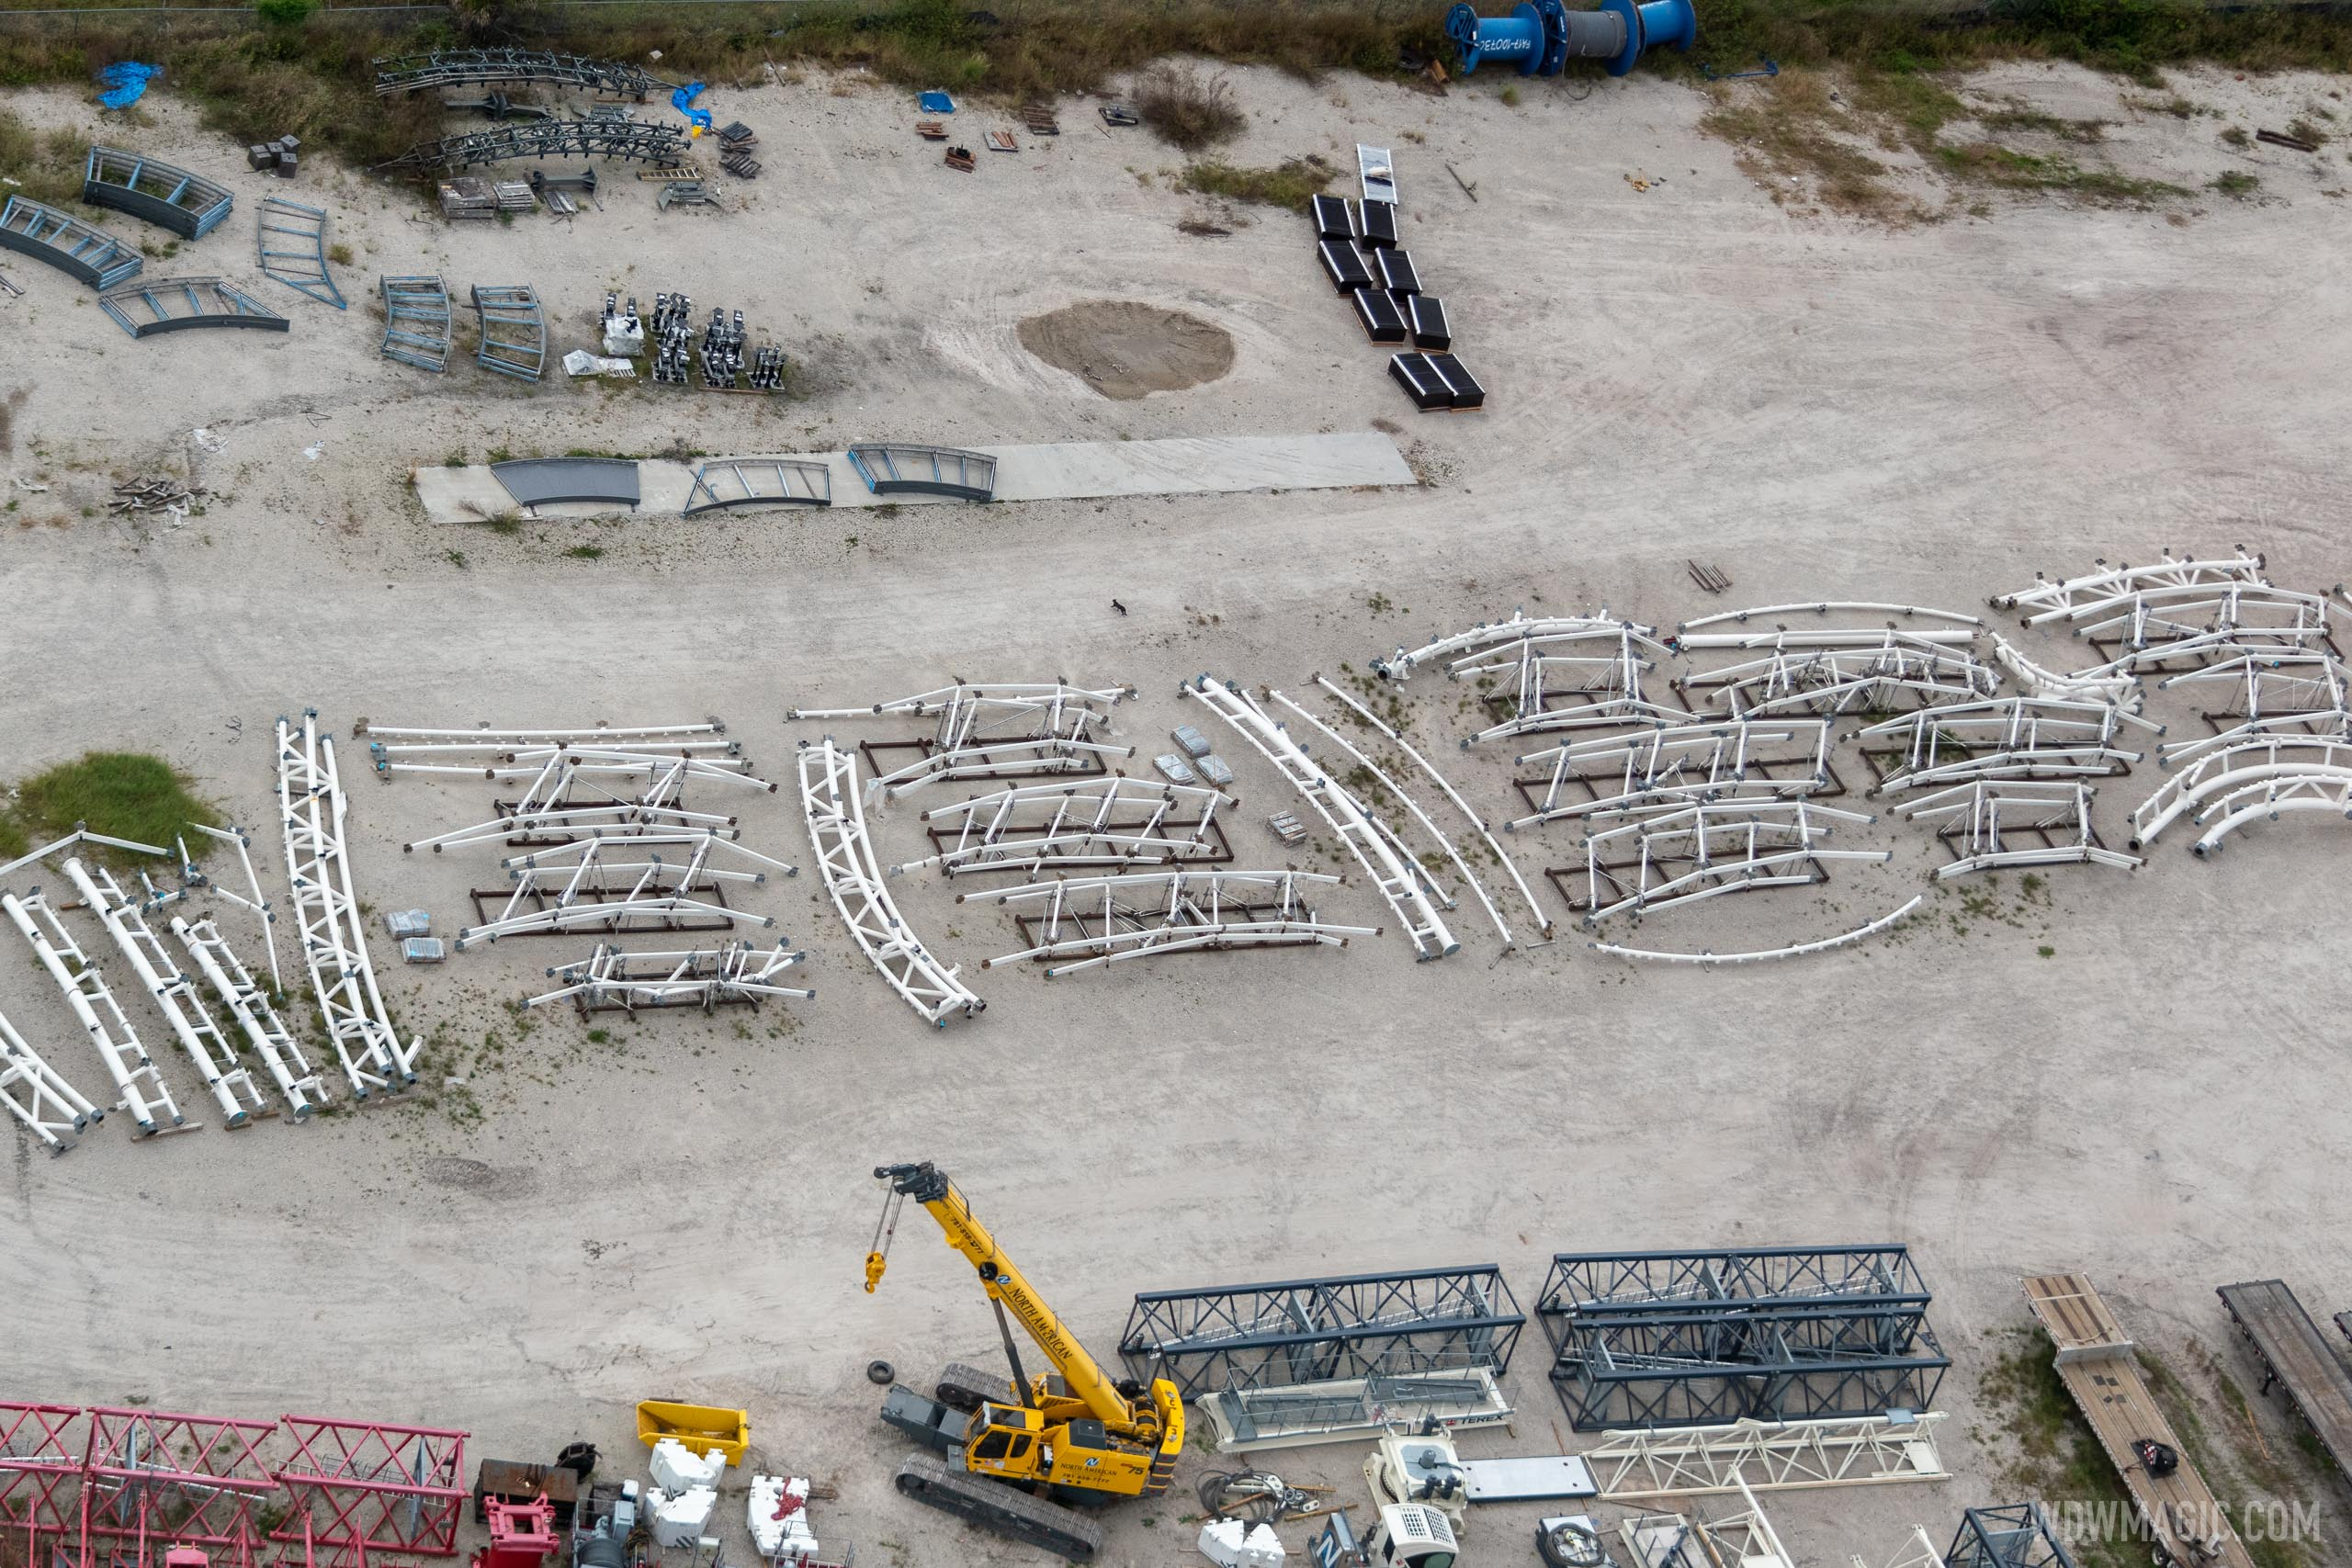 TRON Canopy parts awaiting installation - Aerial photo for WDWMAGIC by @cchard